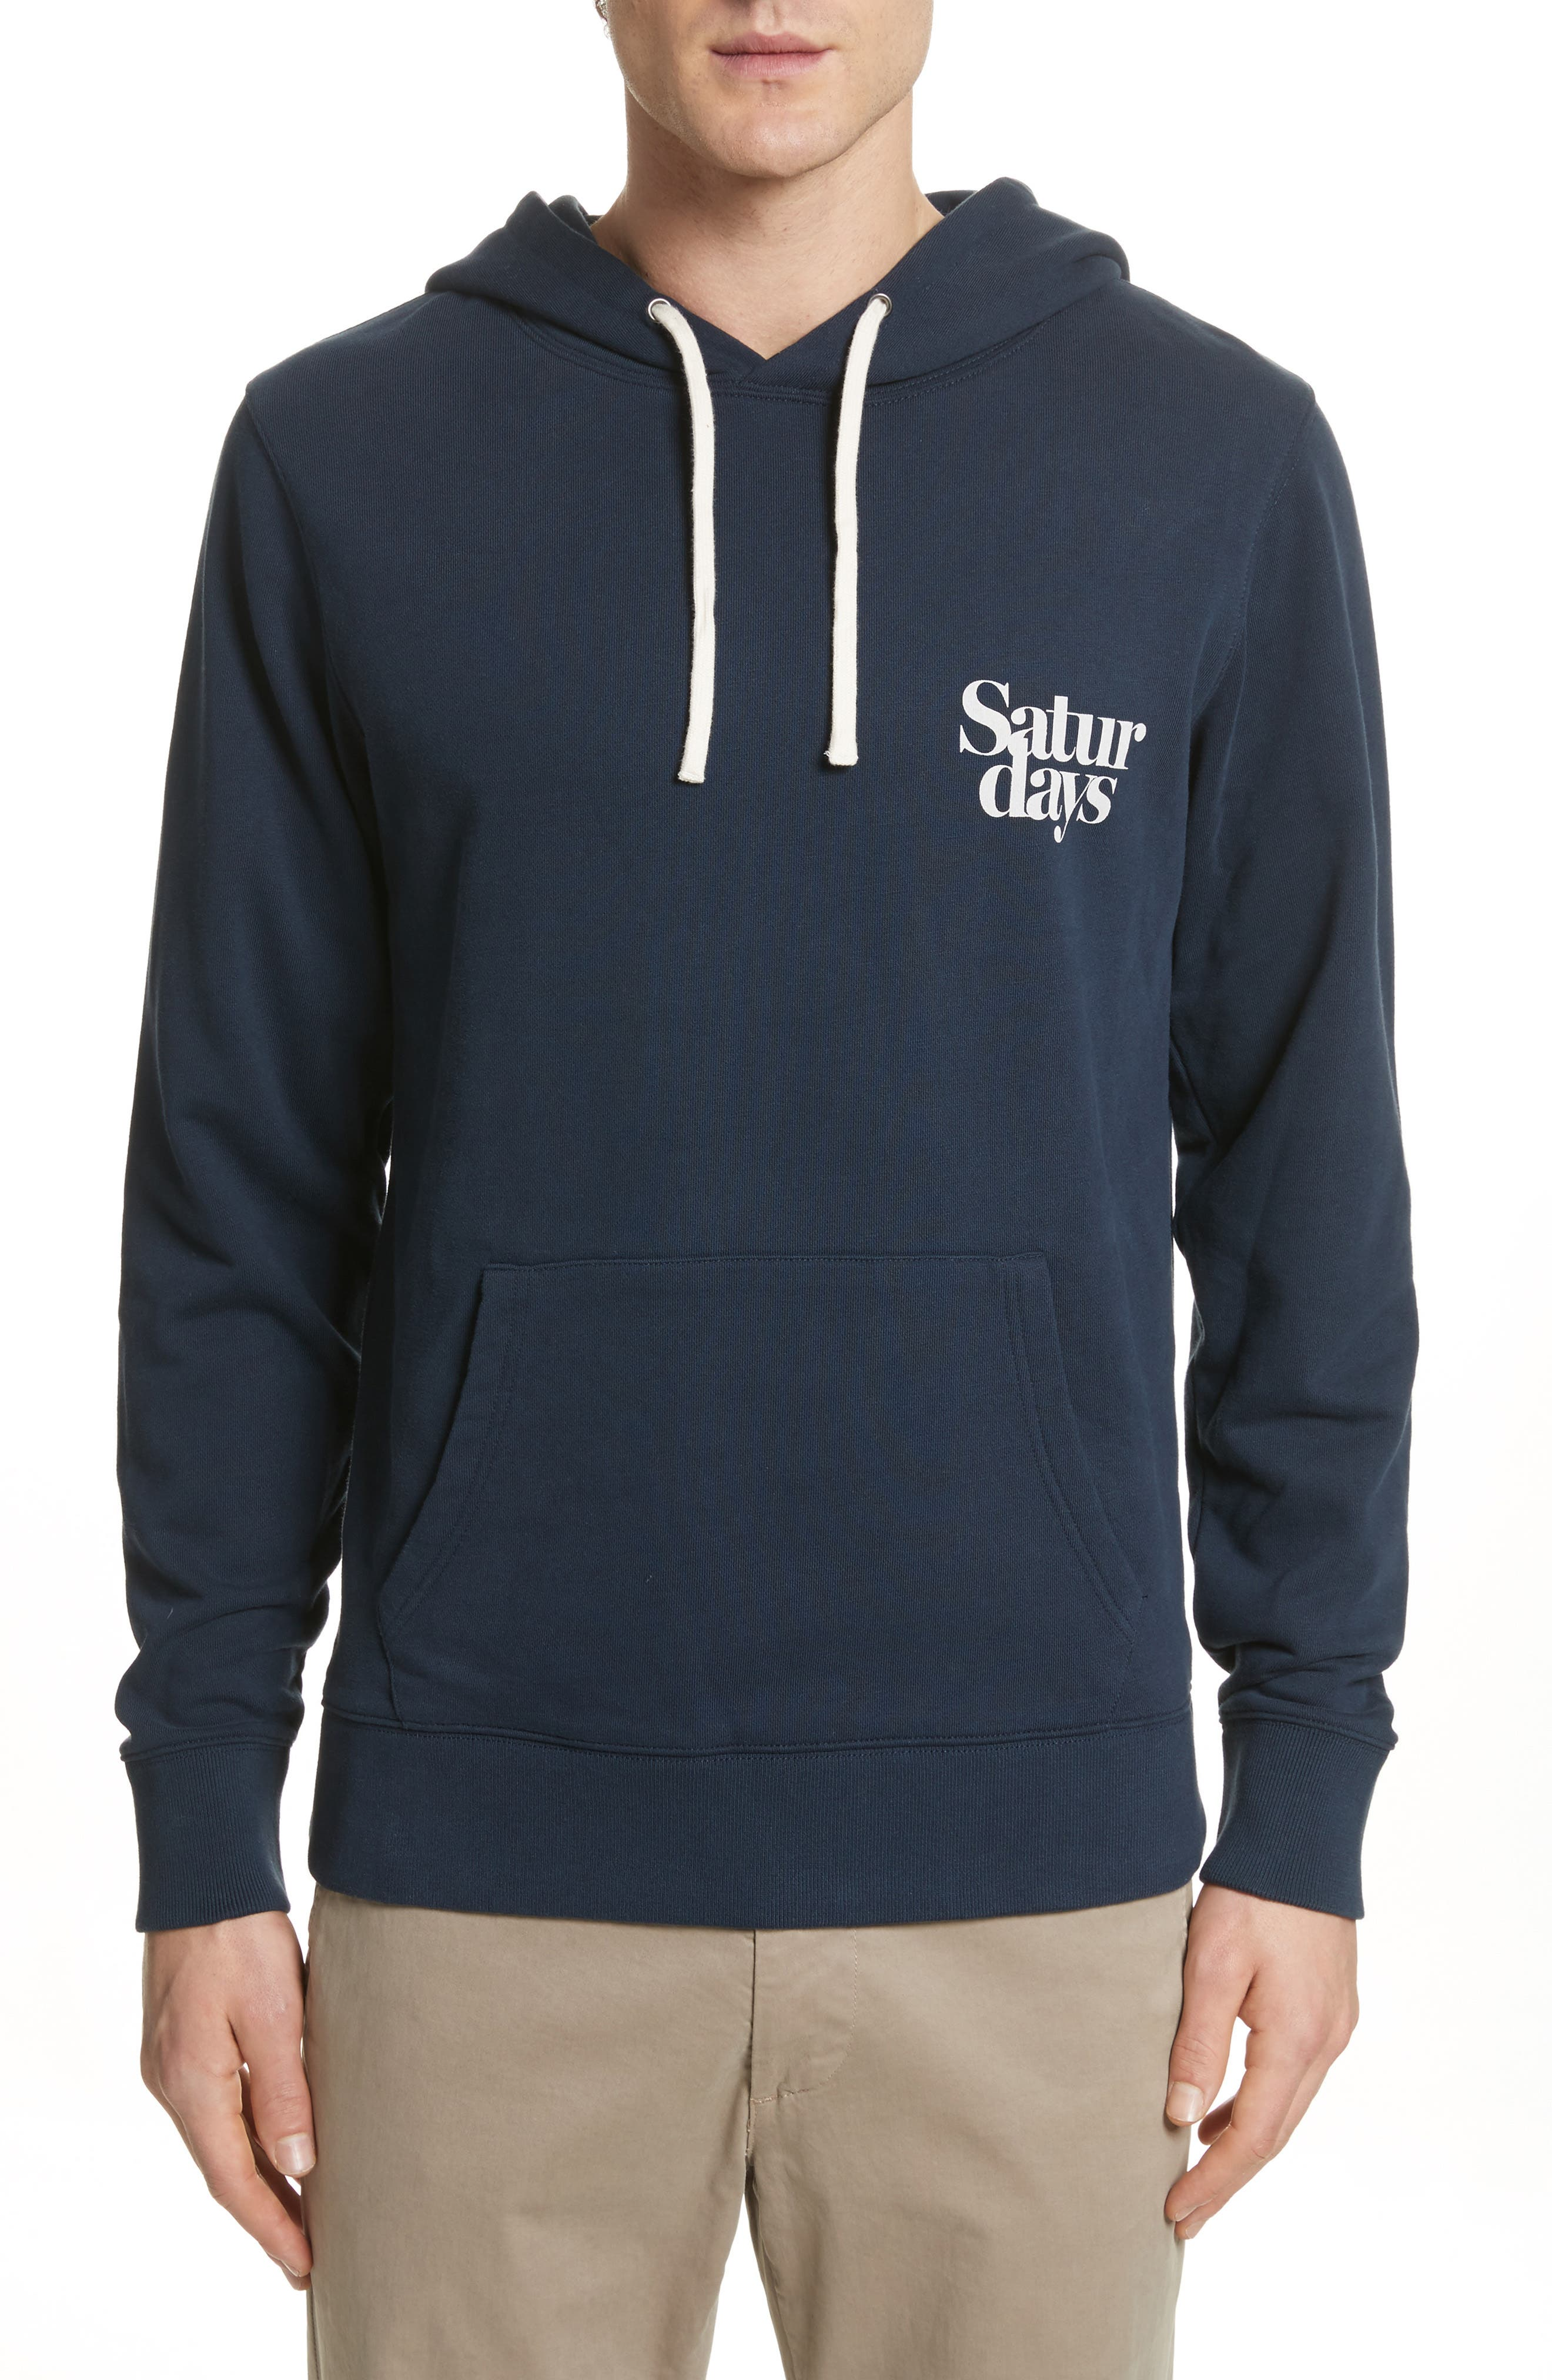 Ditch Miller Hoodie,                             Main thumbnail 1, color,                             Midnight